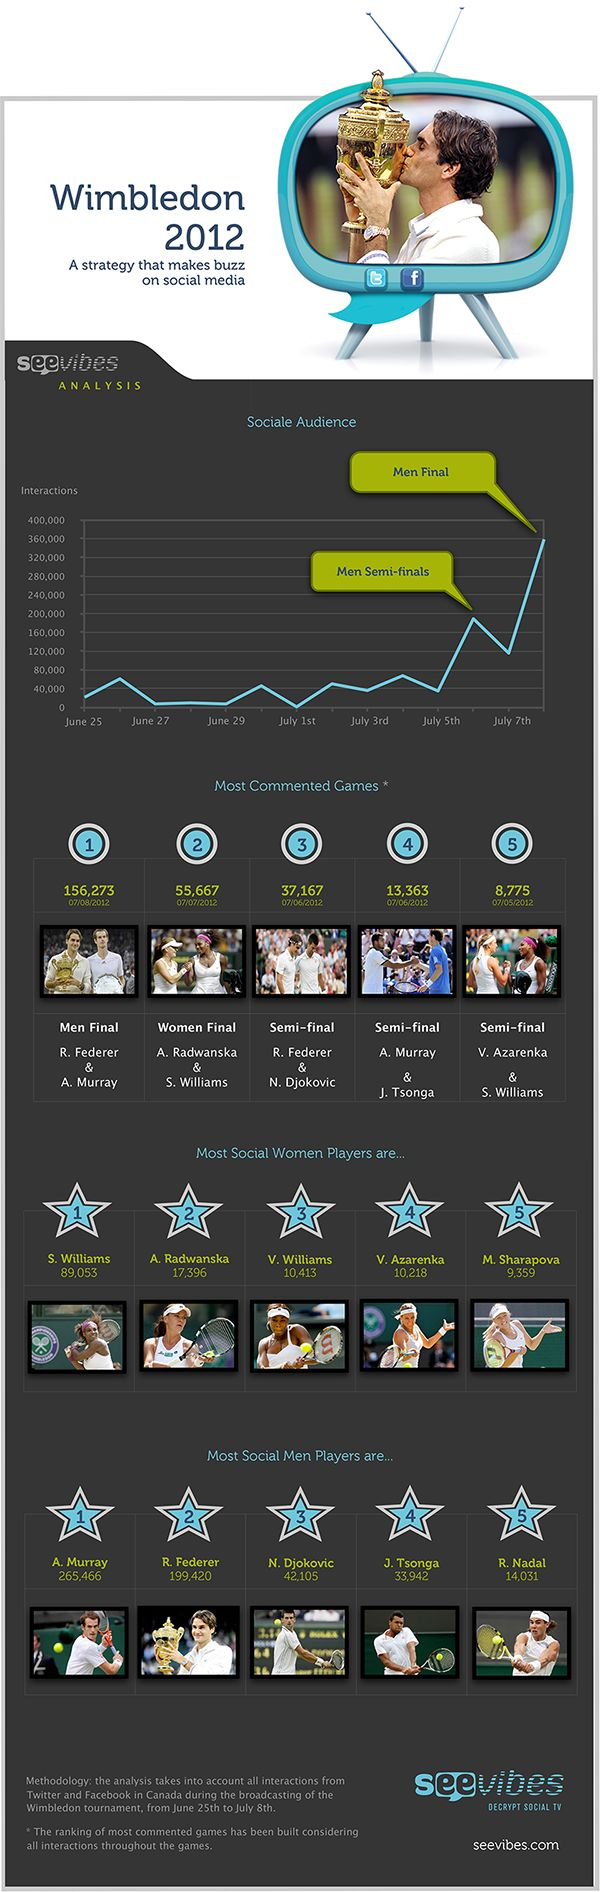 Sporting events abound this summer, including the Euro 2012 soccer championship and the London Olympics opening a few days from now. And the annual #Wimbledon tennis championship took its turn on TV as well as on social media.    After the Sunday final, which marked Roger Federer's seventh triumph at the championship, #Seevibes produced an #infographic to analyze the social activity spawned by the two weeks of the tournament.   #Federer #Murray #Tennis #SocialTV #SocialMedia